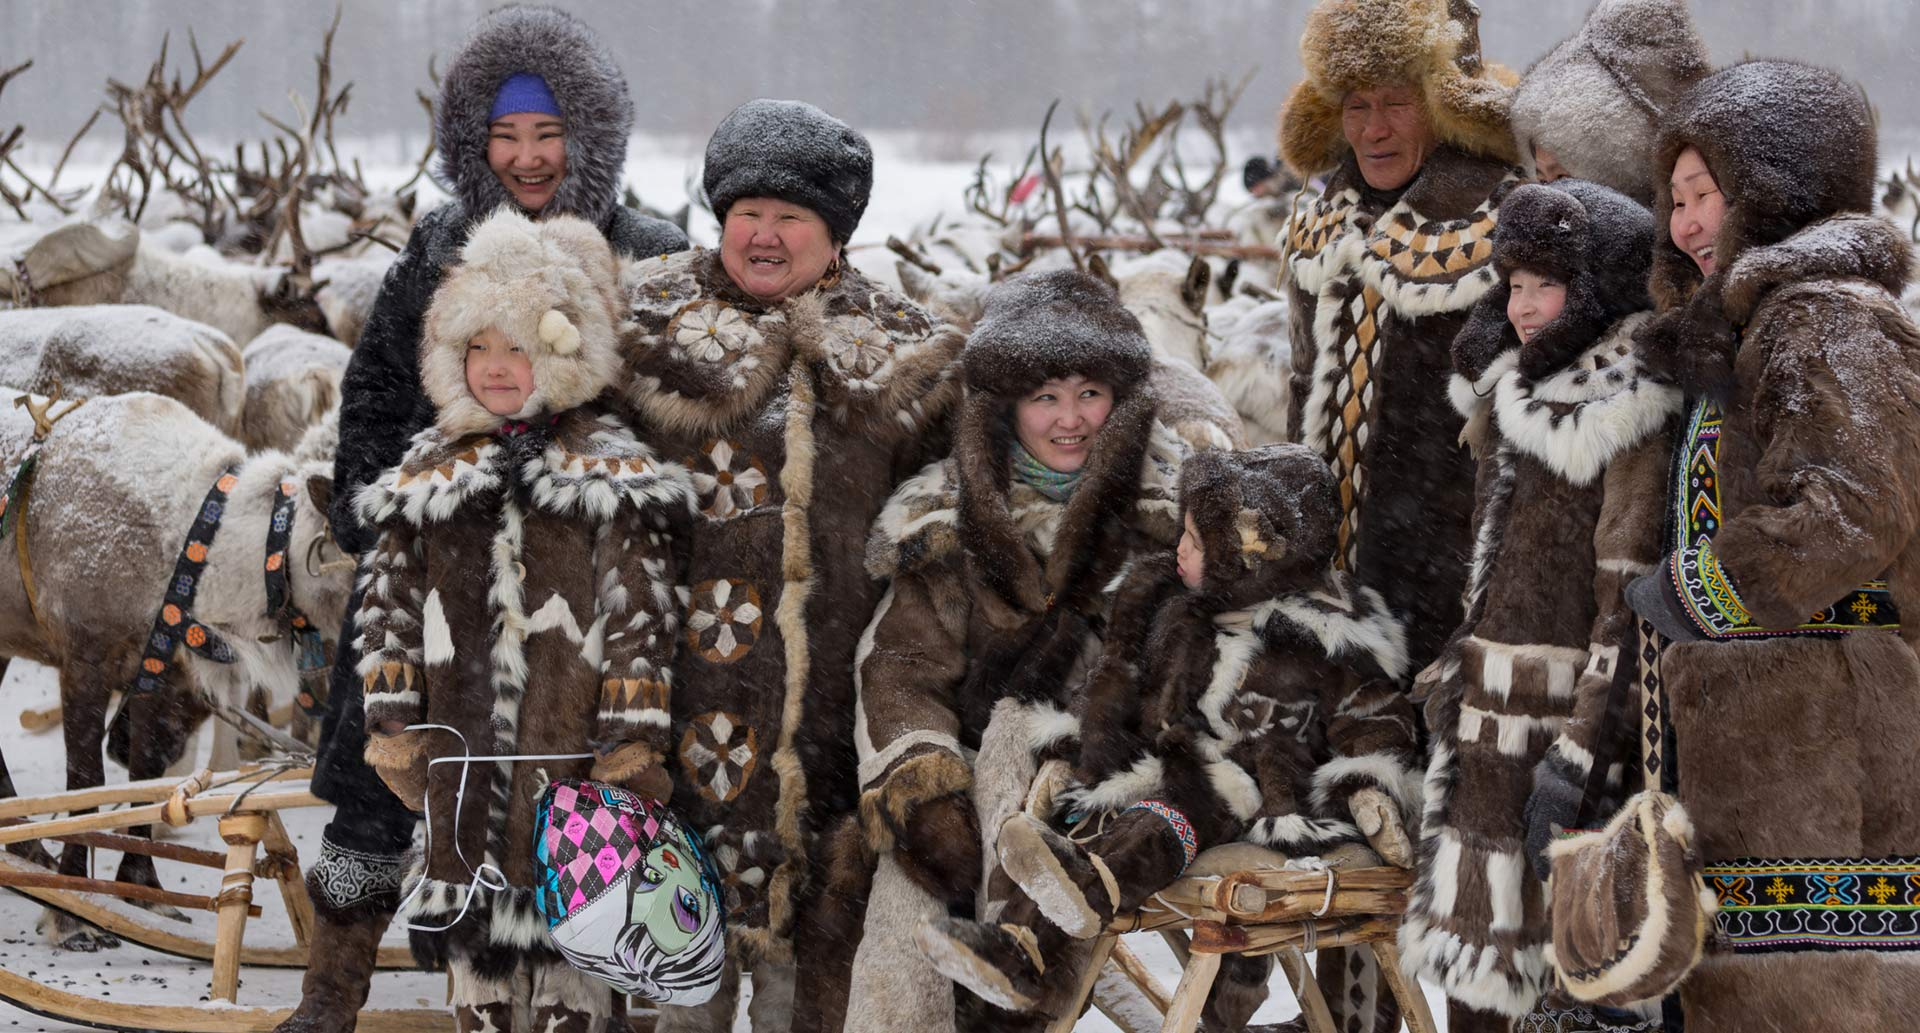 The nomadic people whose lives are increasingly affected by mining in Siberia.